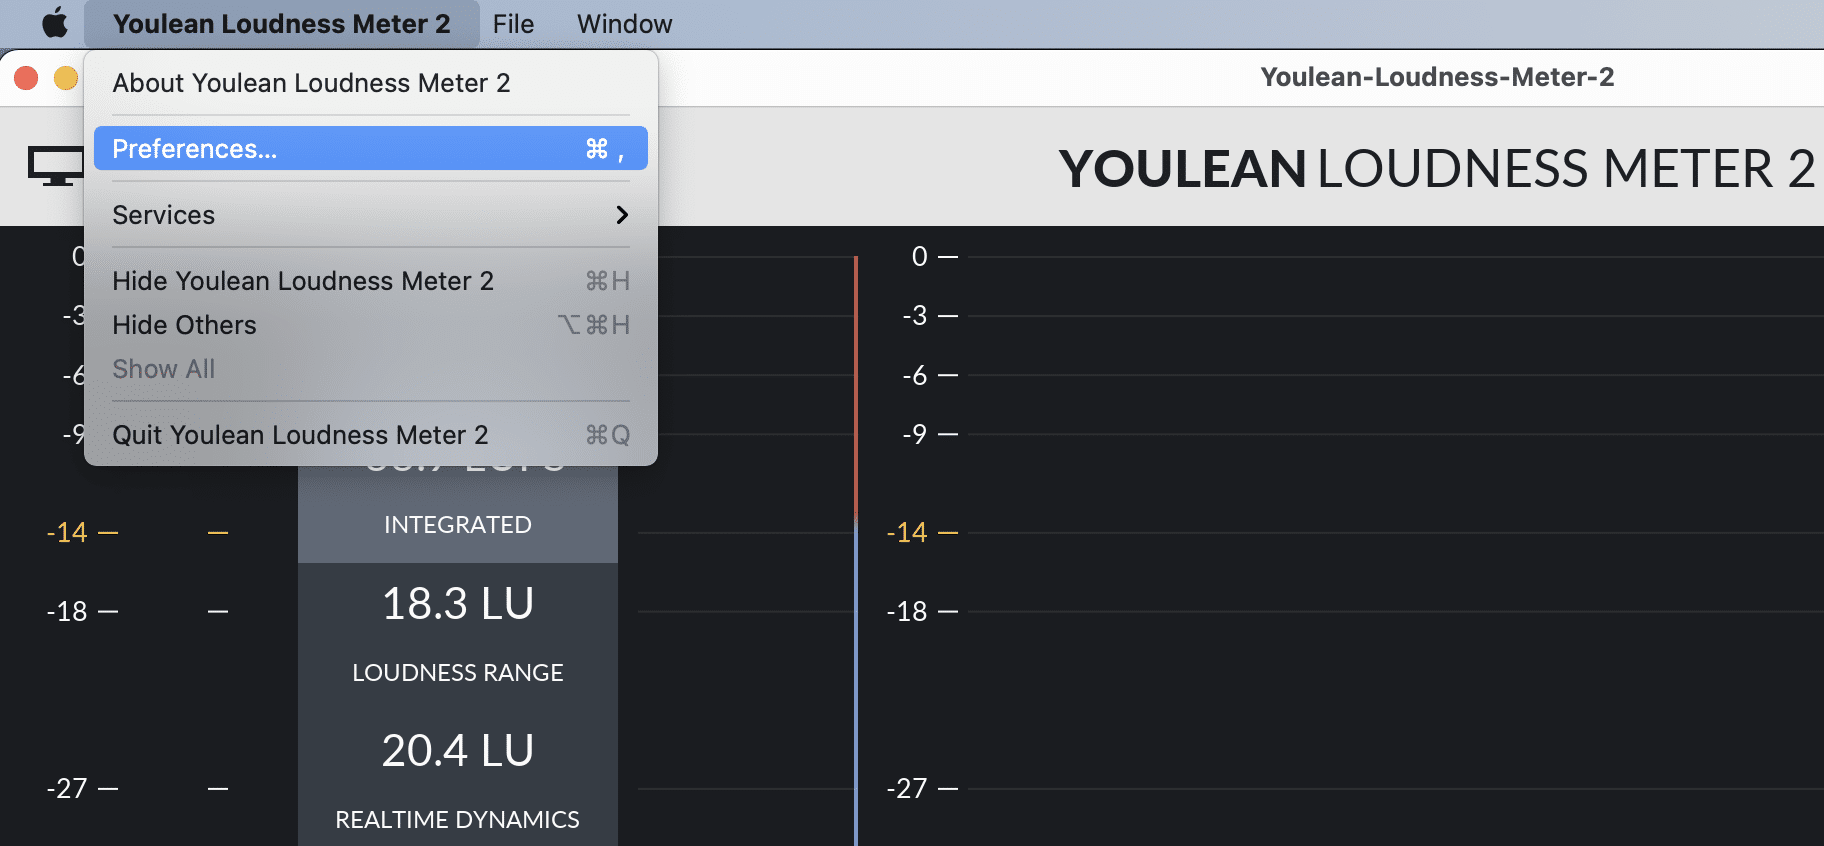 Open Youlean Loudness Meter 2 app preferences